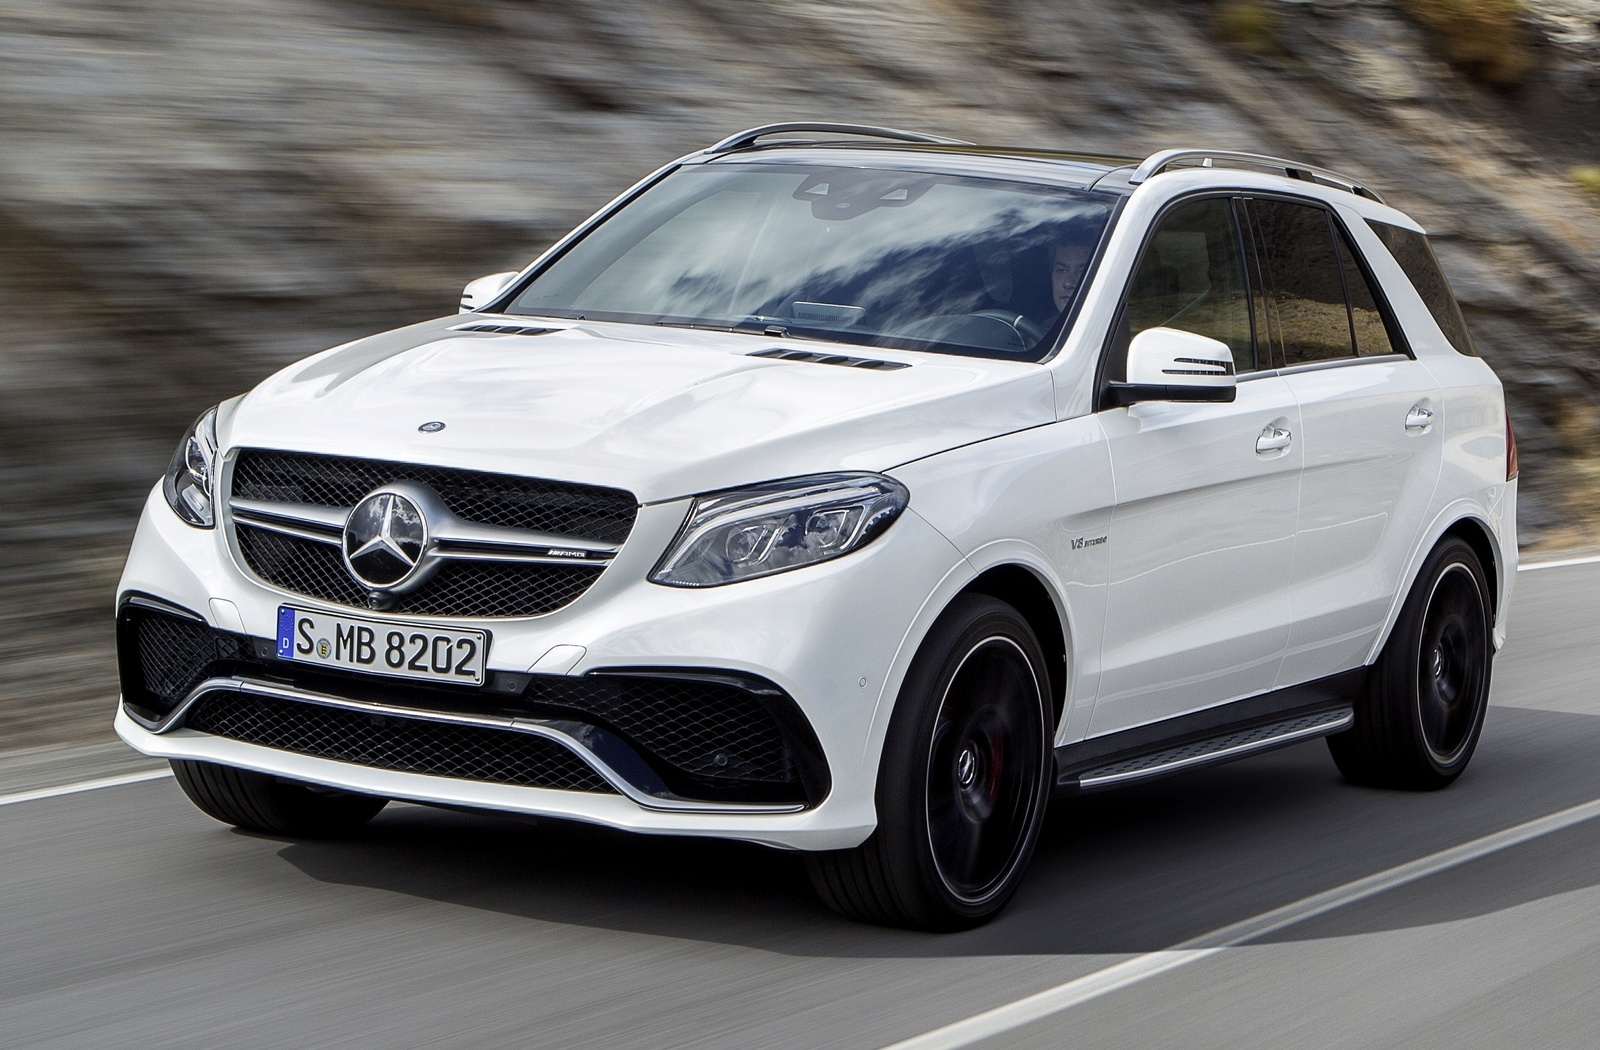 2016 mercedes benz gle class overview cargurus for Mercedes benz for sale near me